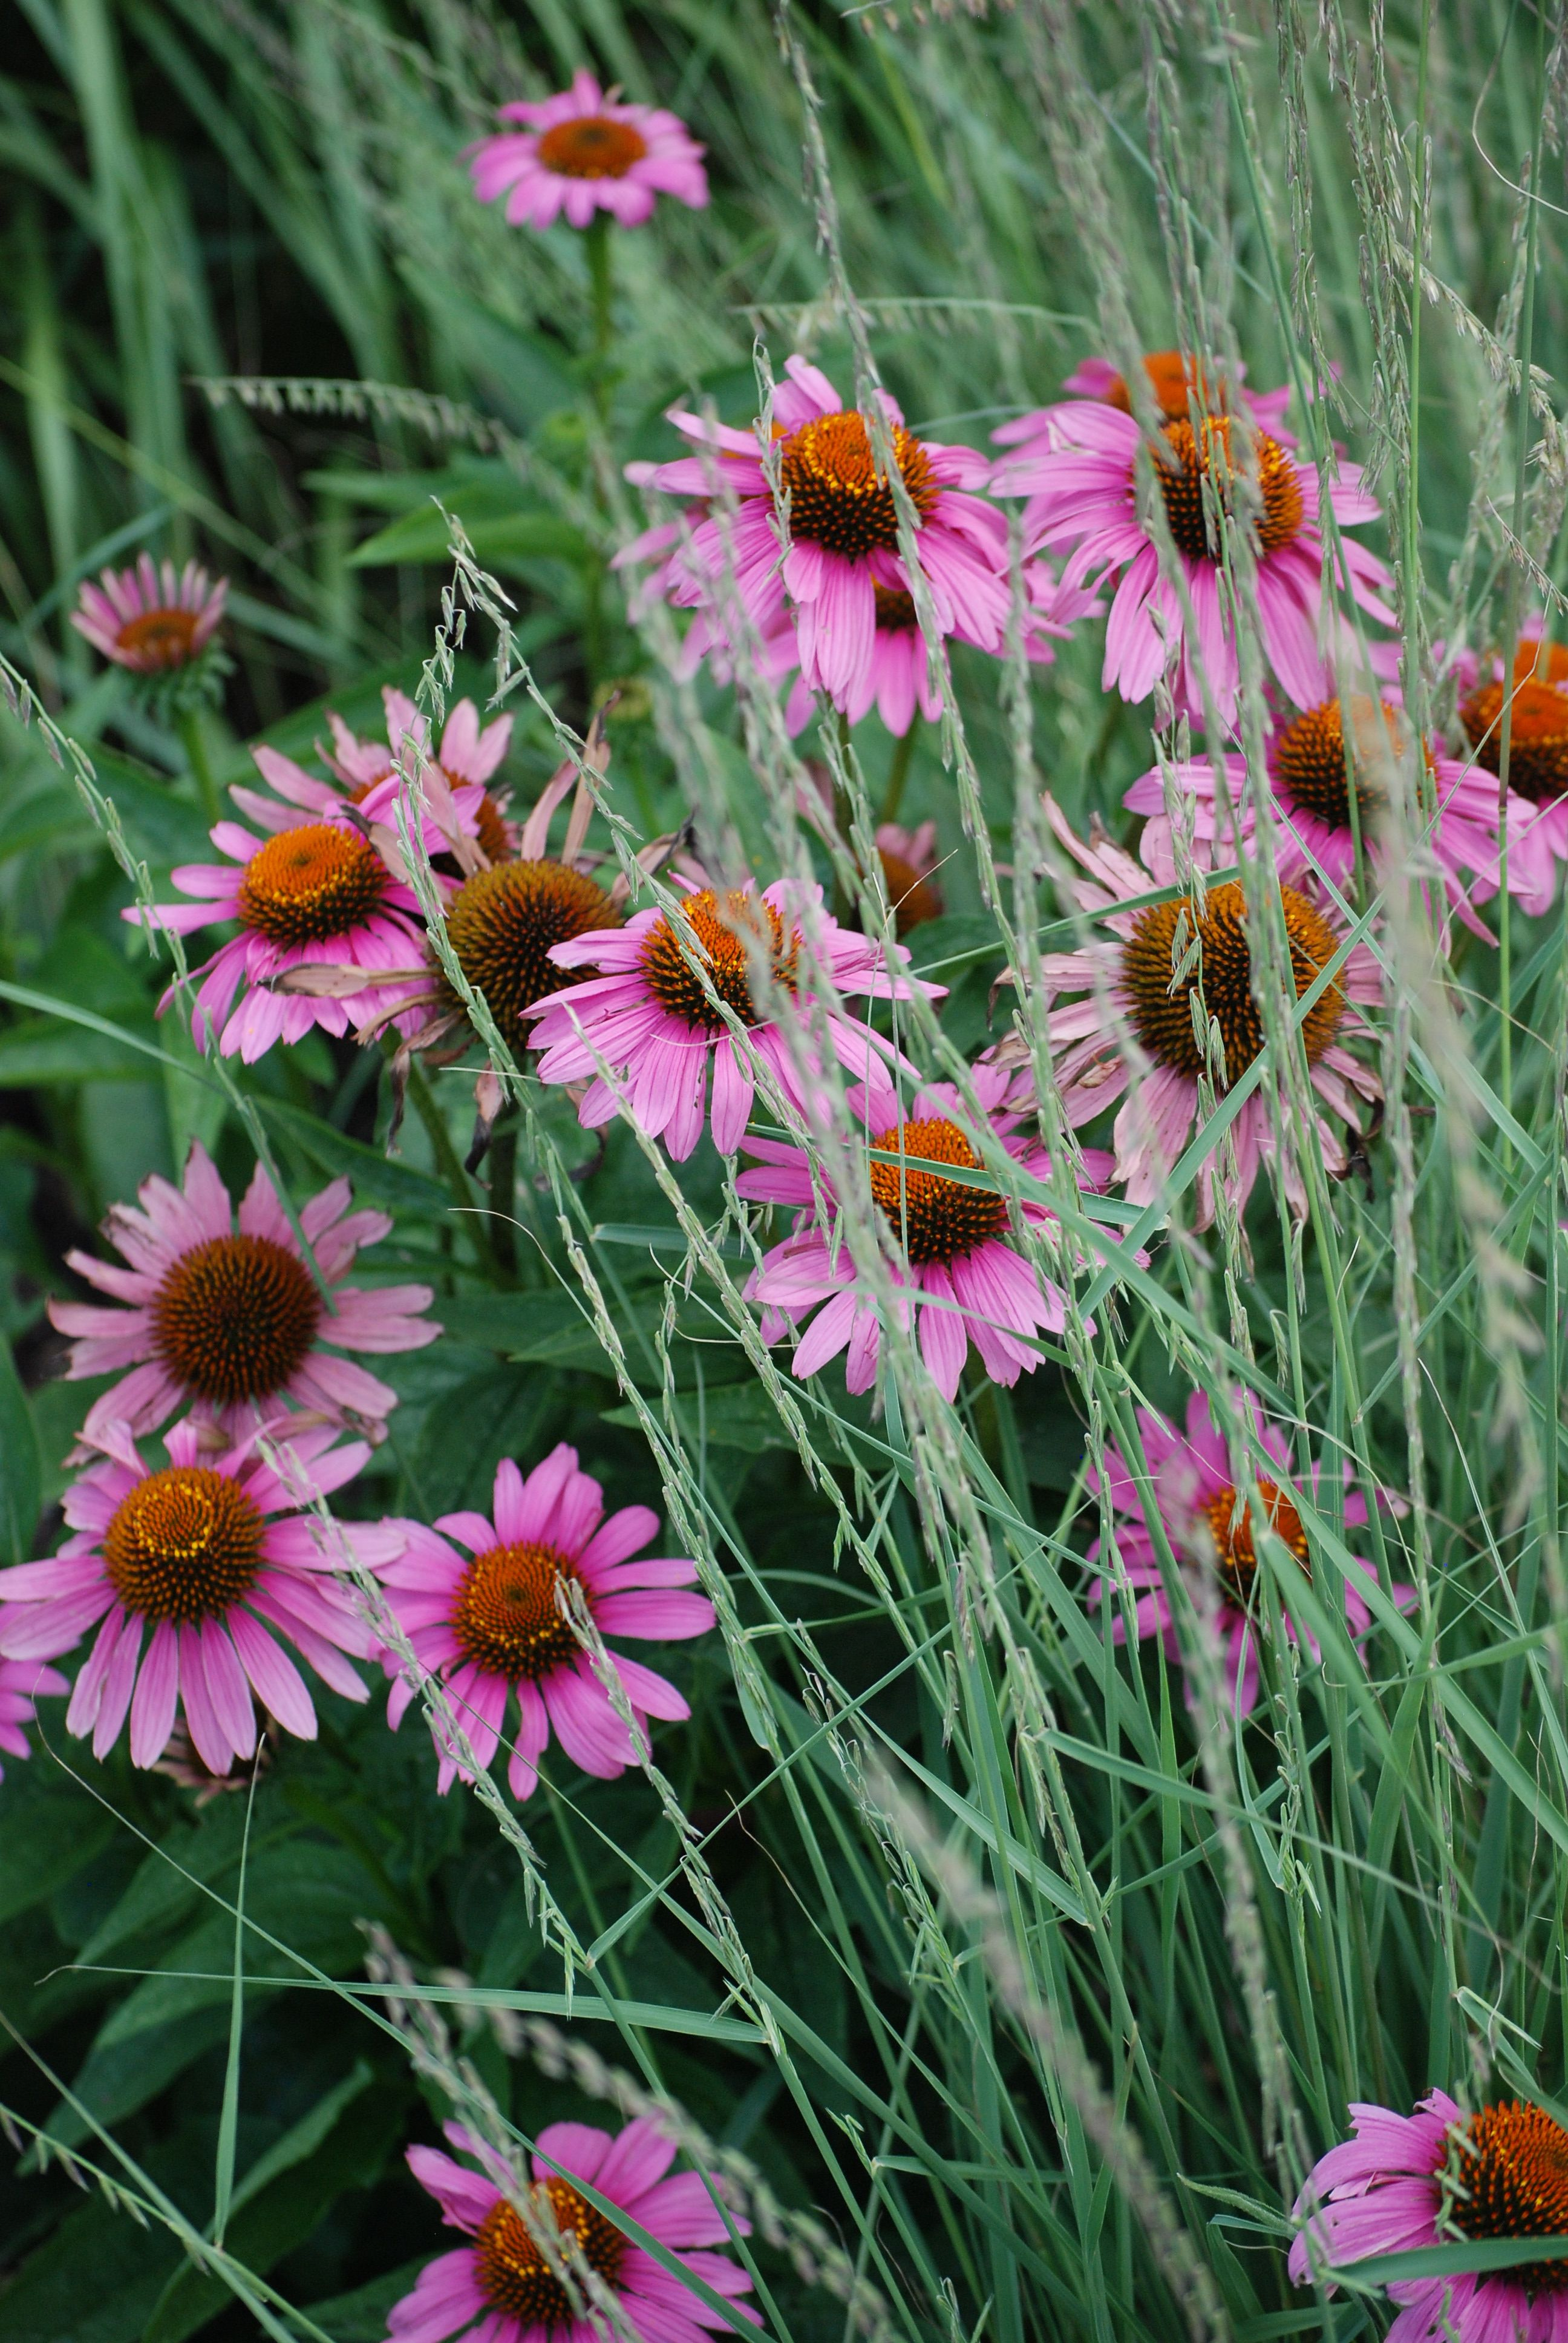 Purple Coneflower We Have Labeled Our Native Plants With Names Botanicals And Photos So That Visitors Can Learn About Beautiful Flowers Plants Native Plants